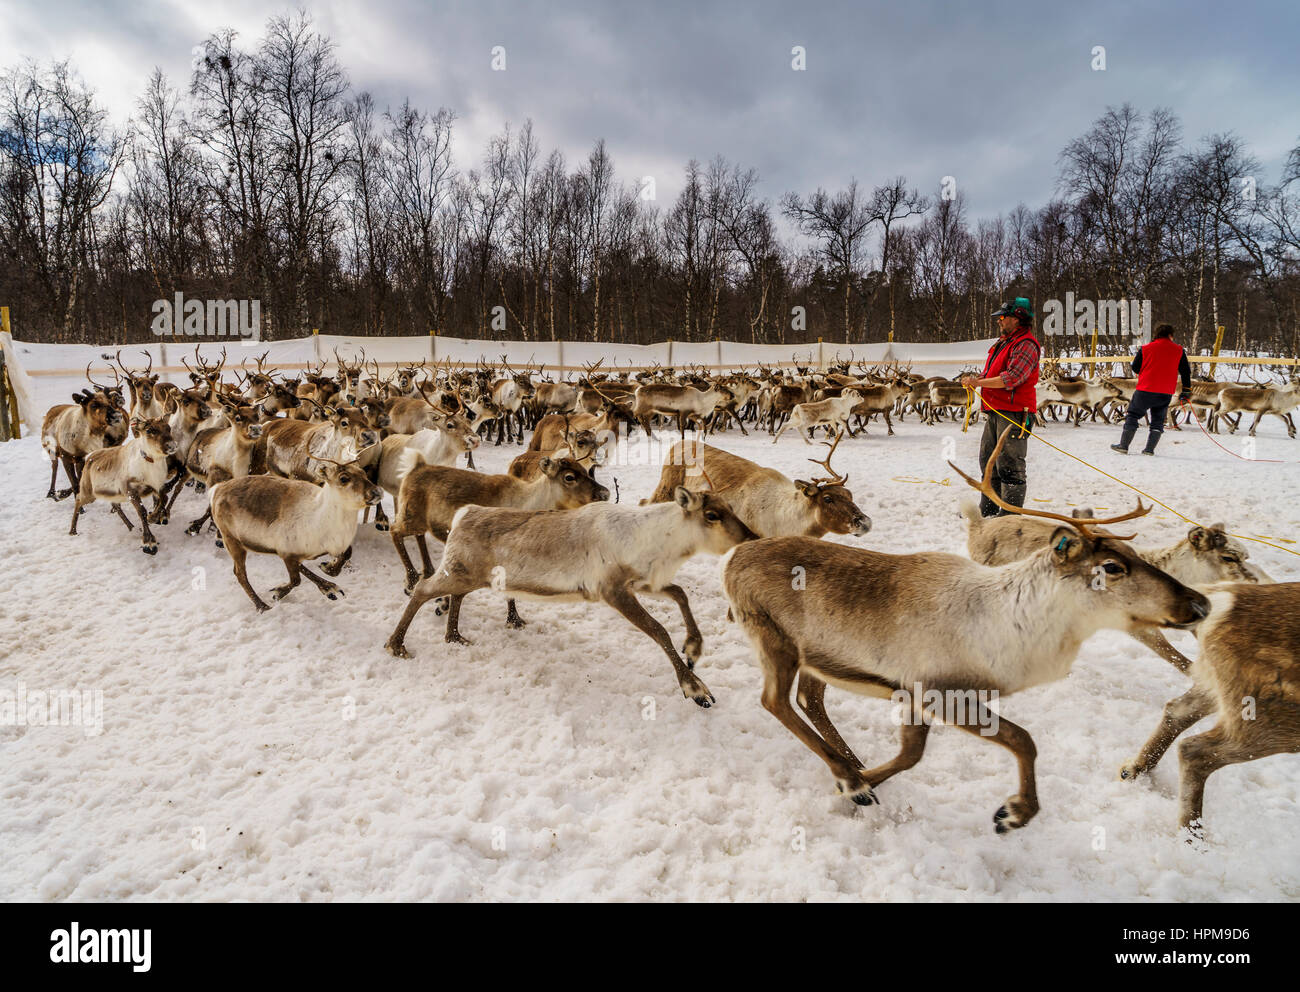 Reindeer Herding, The Laponian Area, a world heritage location, Northern Sweden Stock Photo